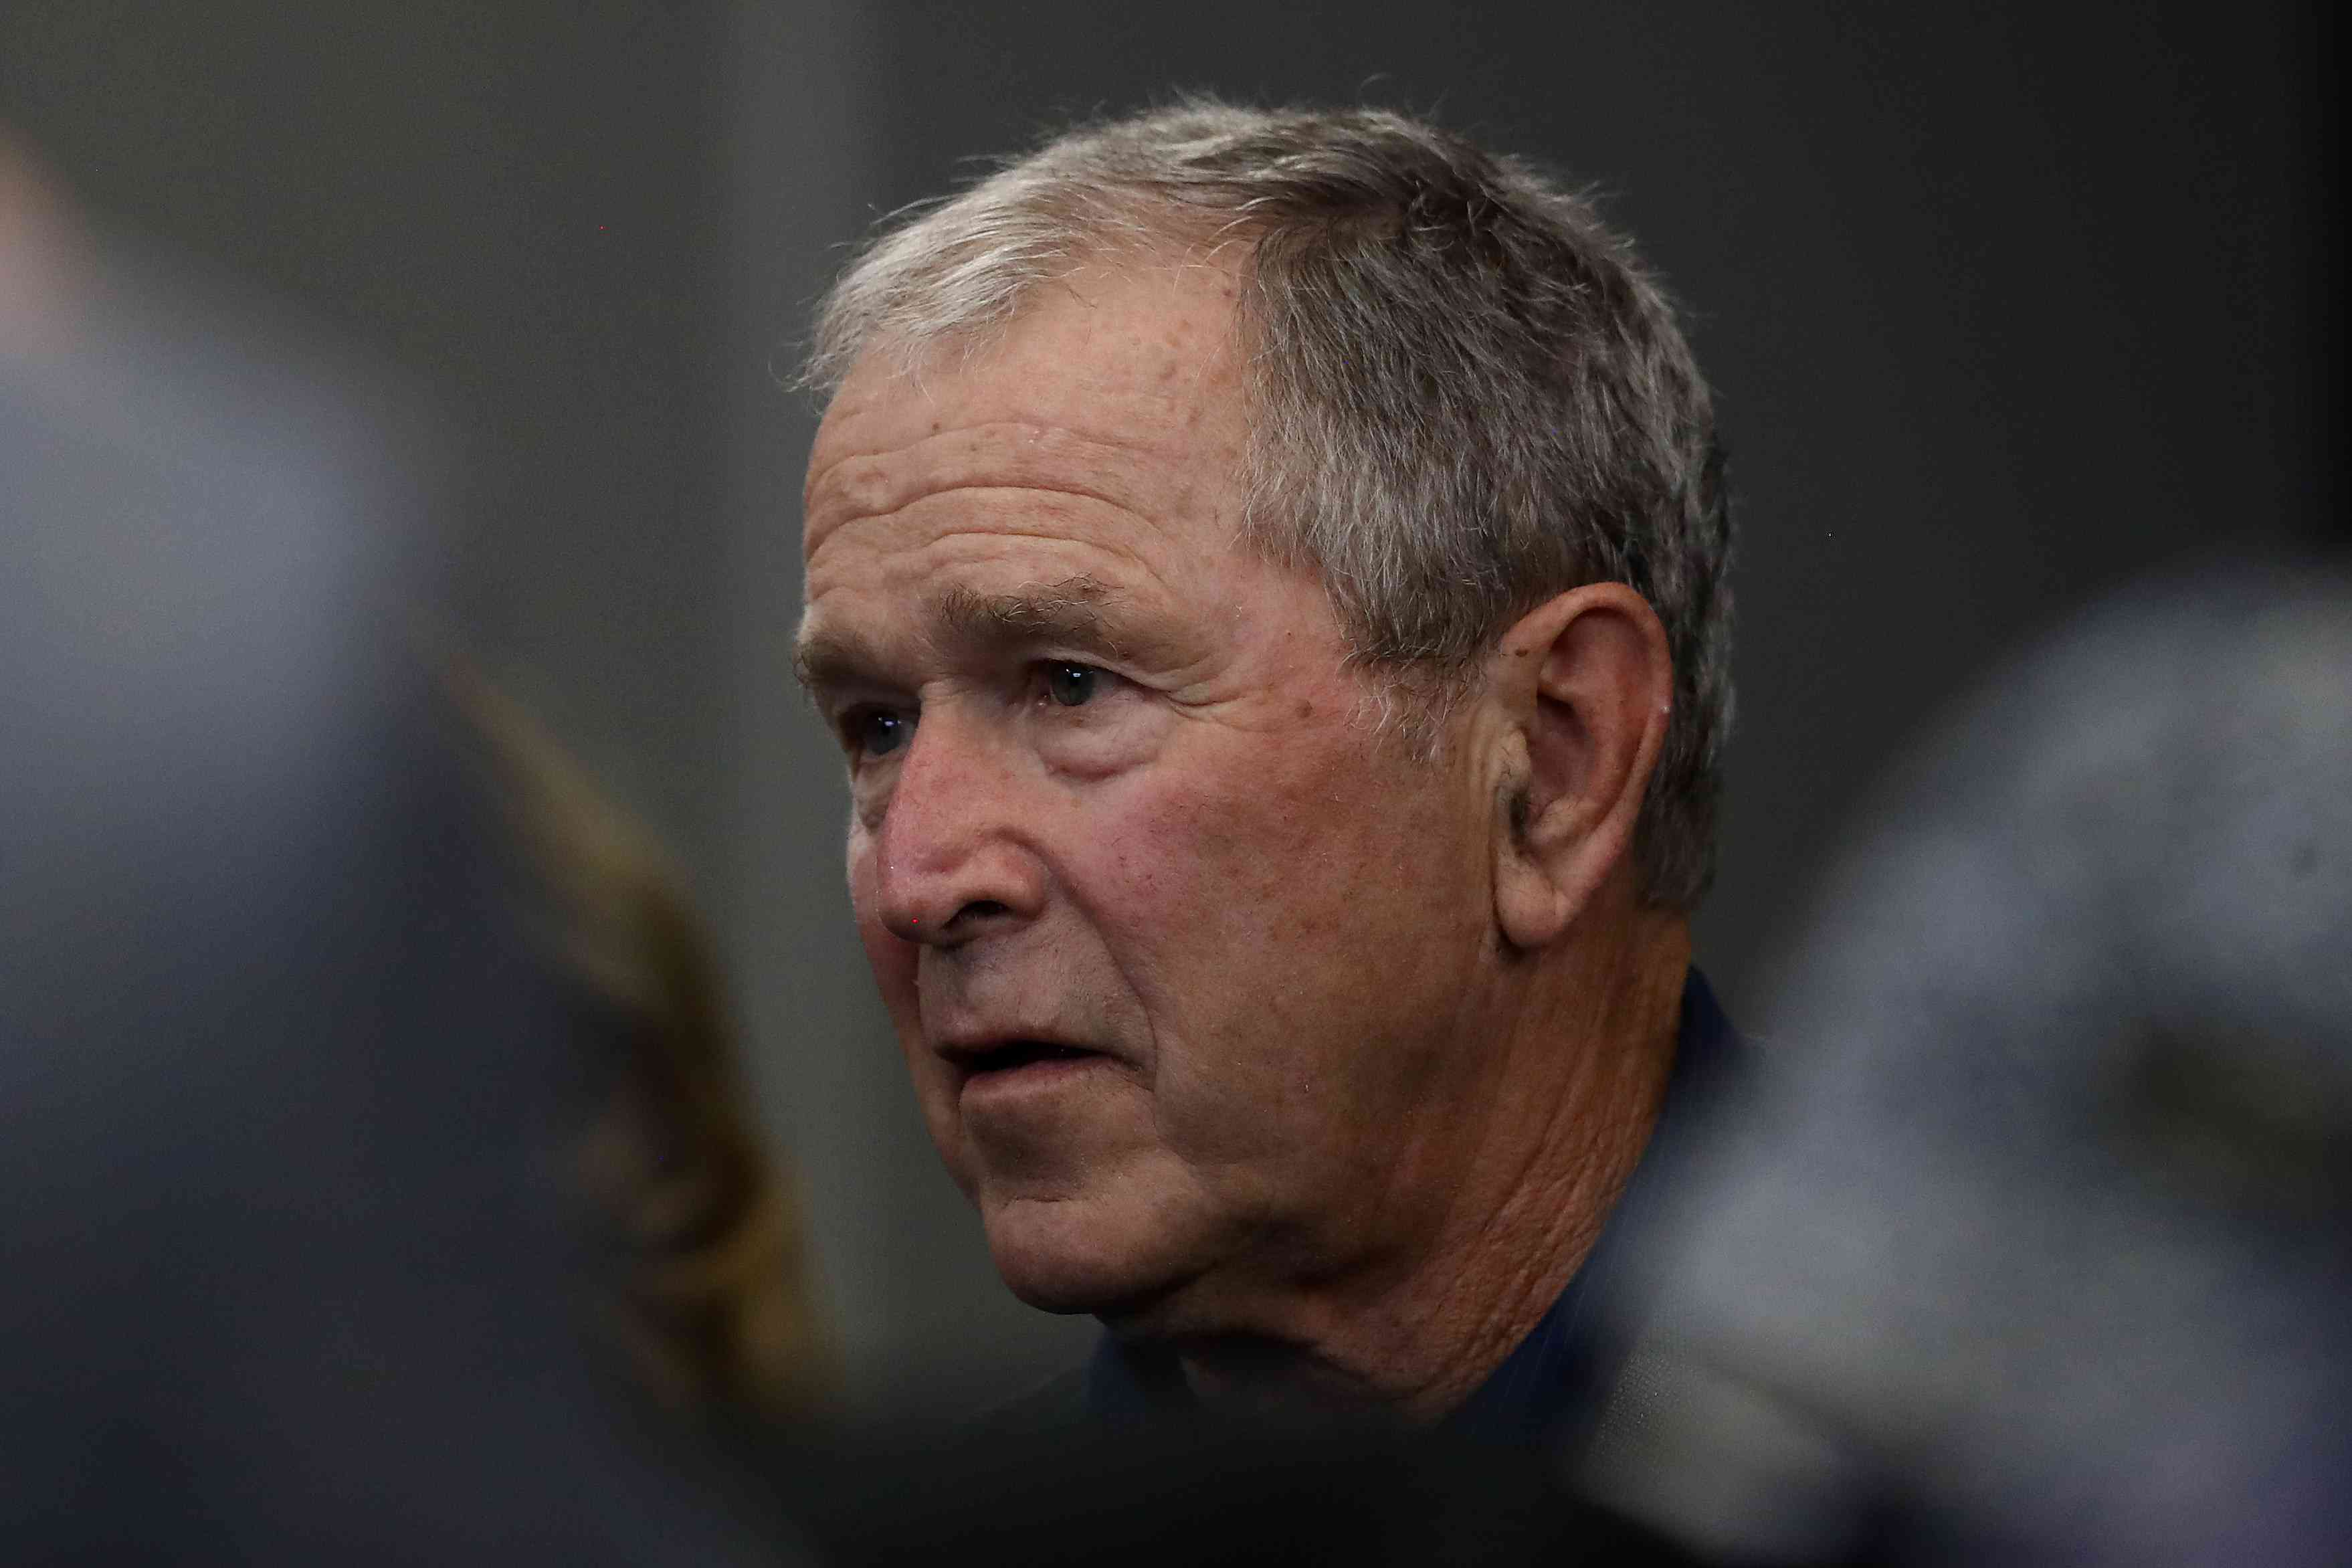 George W. Bush attends an NFL Game